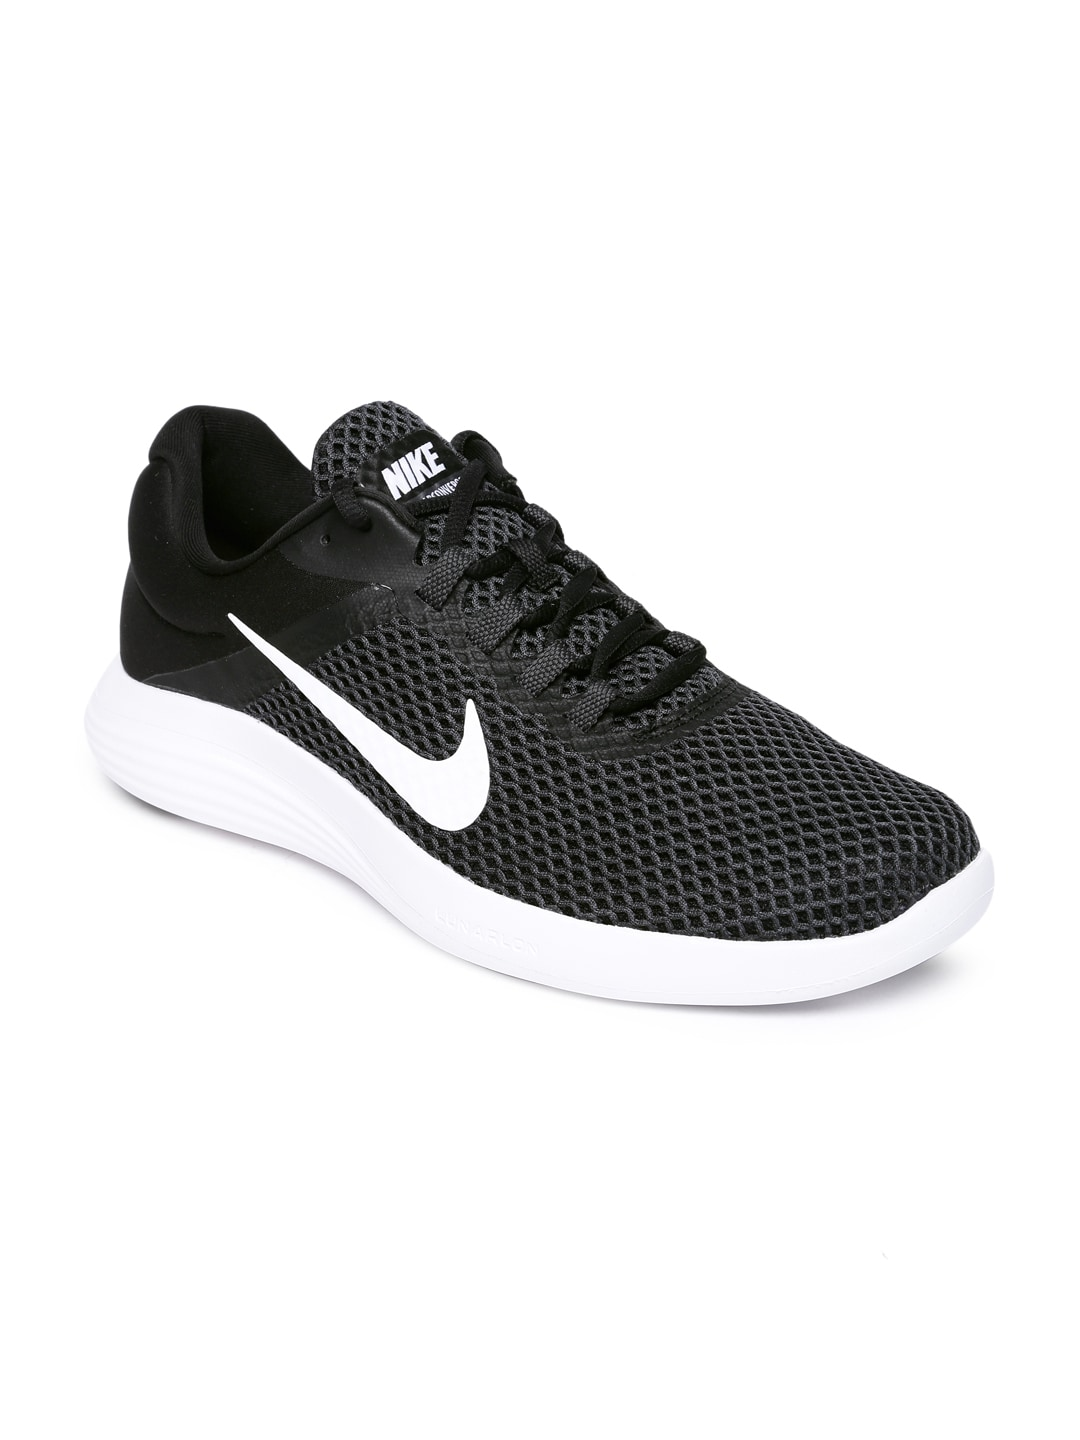 12f929bc417 Nike Revolution - Buy Nike Revolution online in India